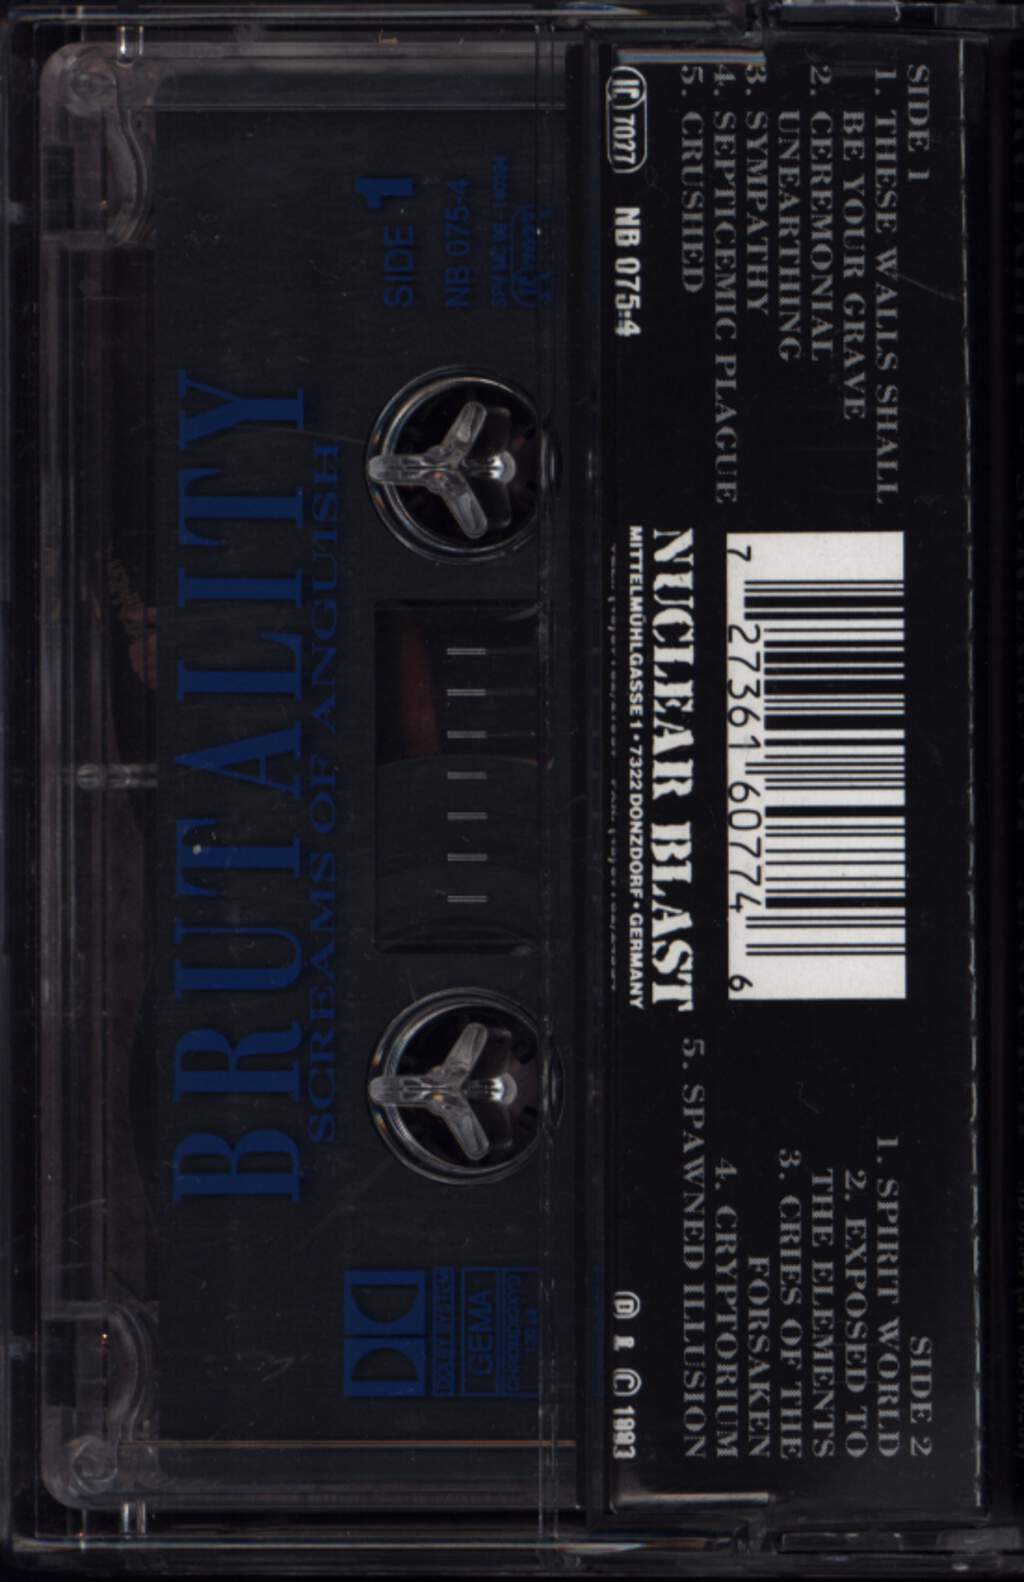 Brutality: Screams Of Anguish, Compact Cassette